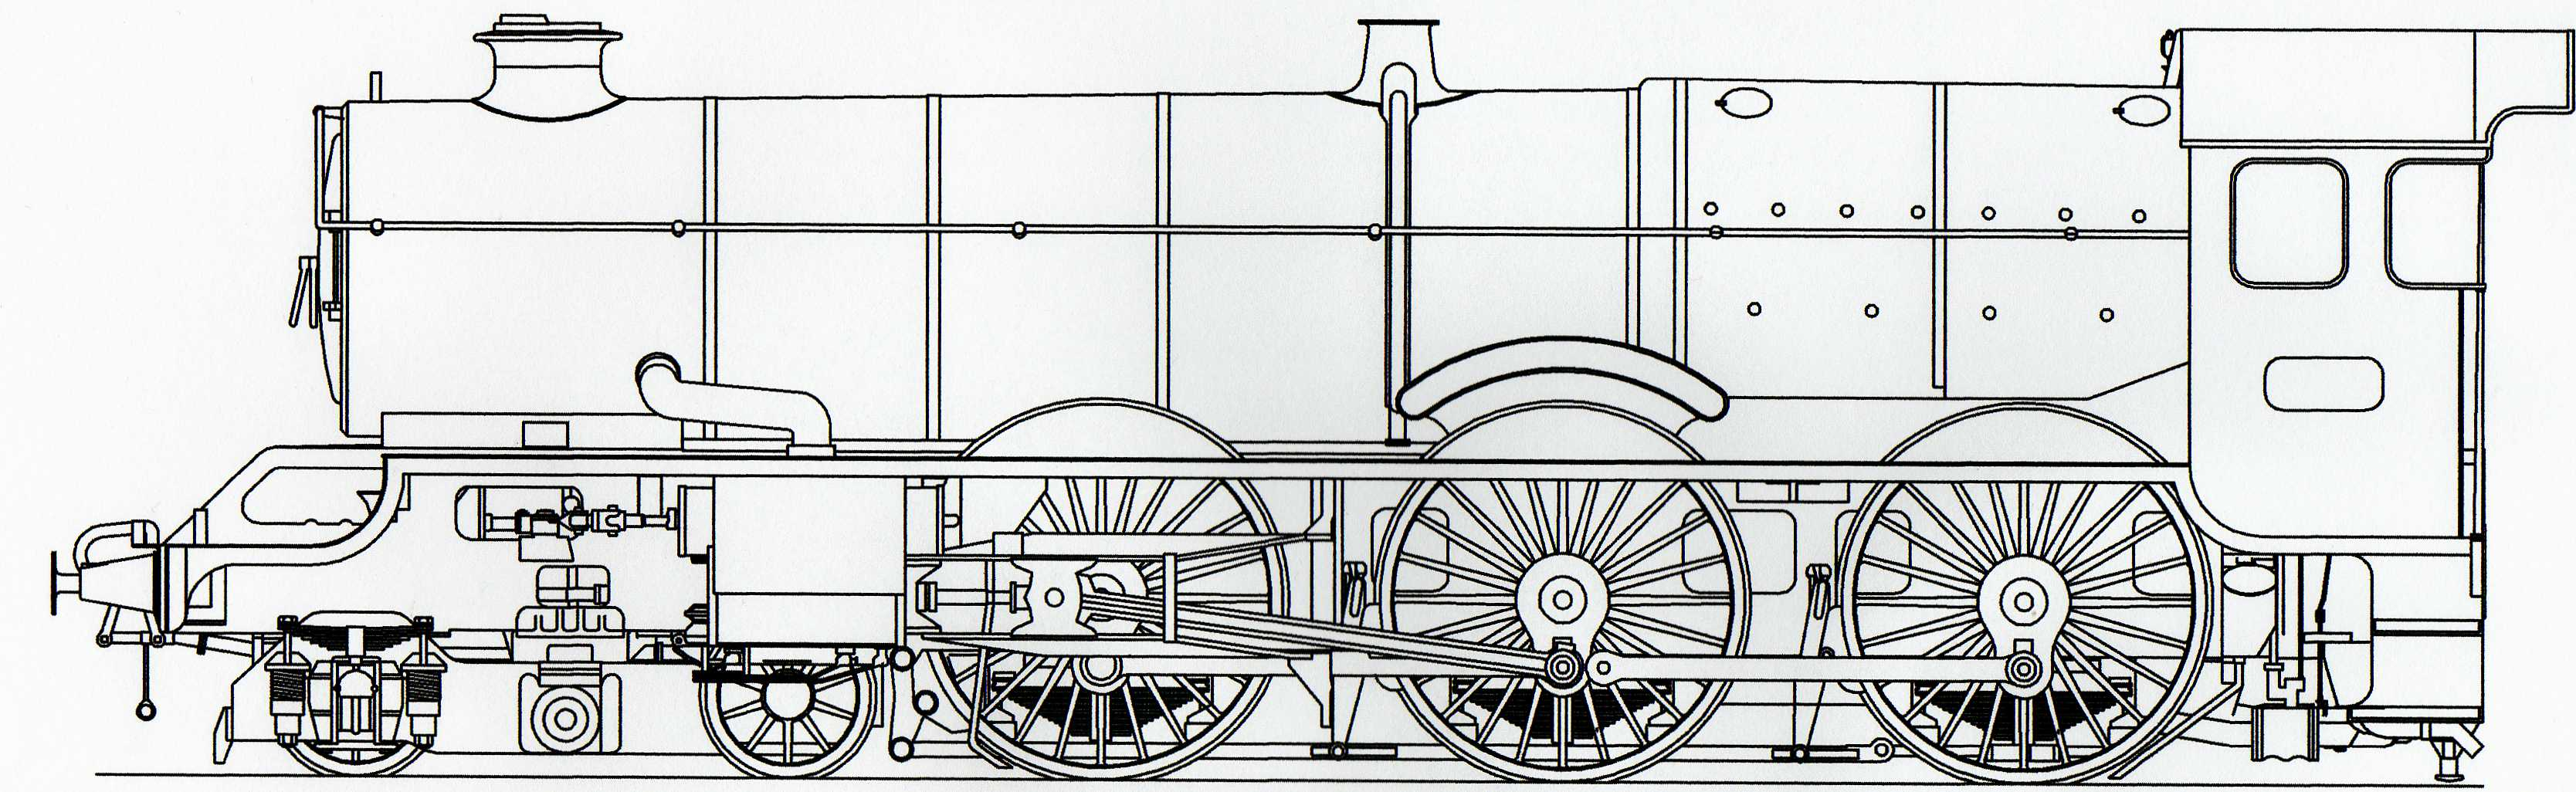 File autocad drawing of a great western for Online cad drawing